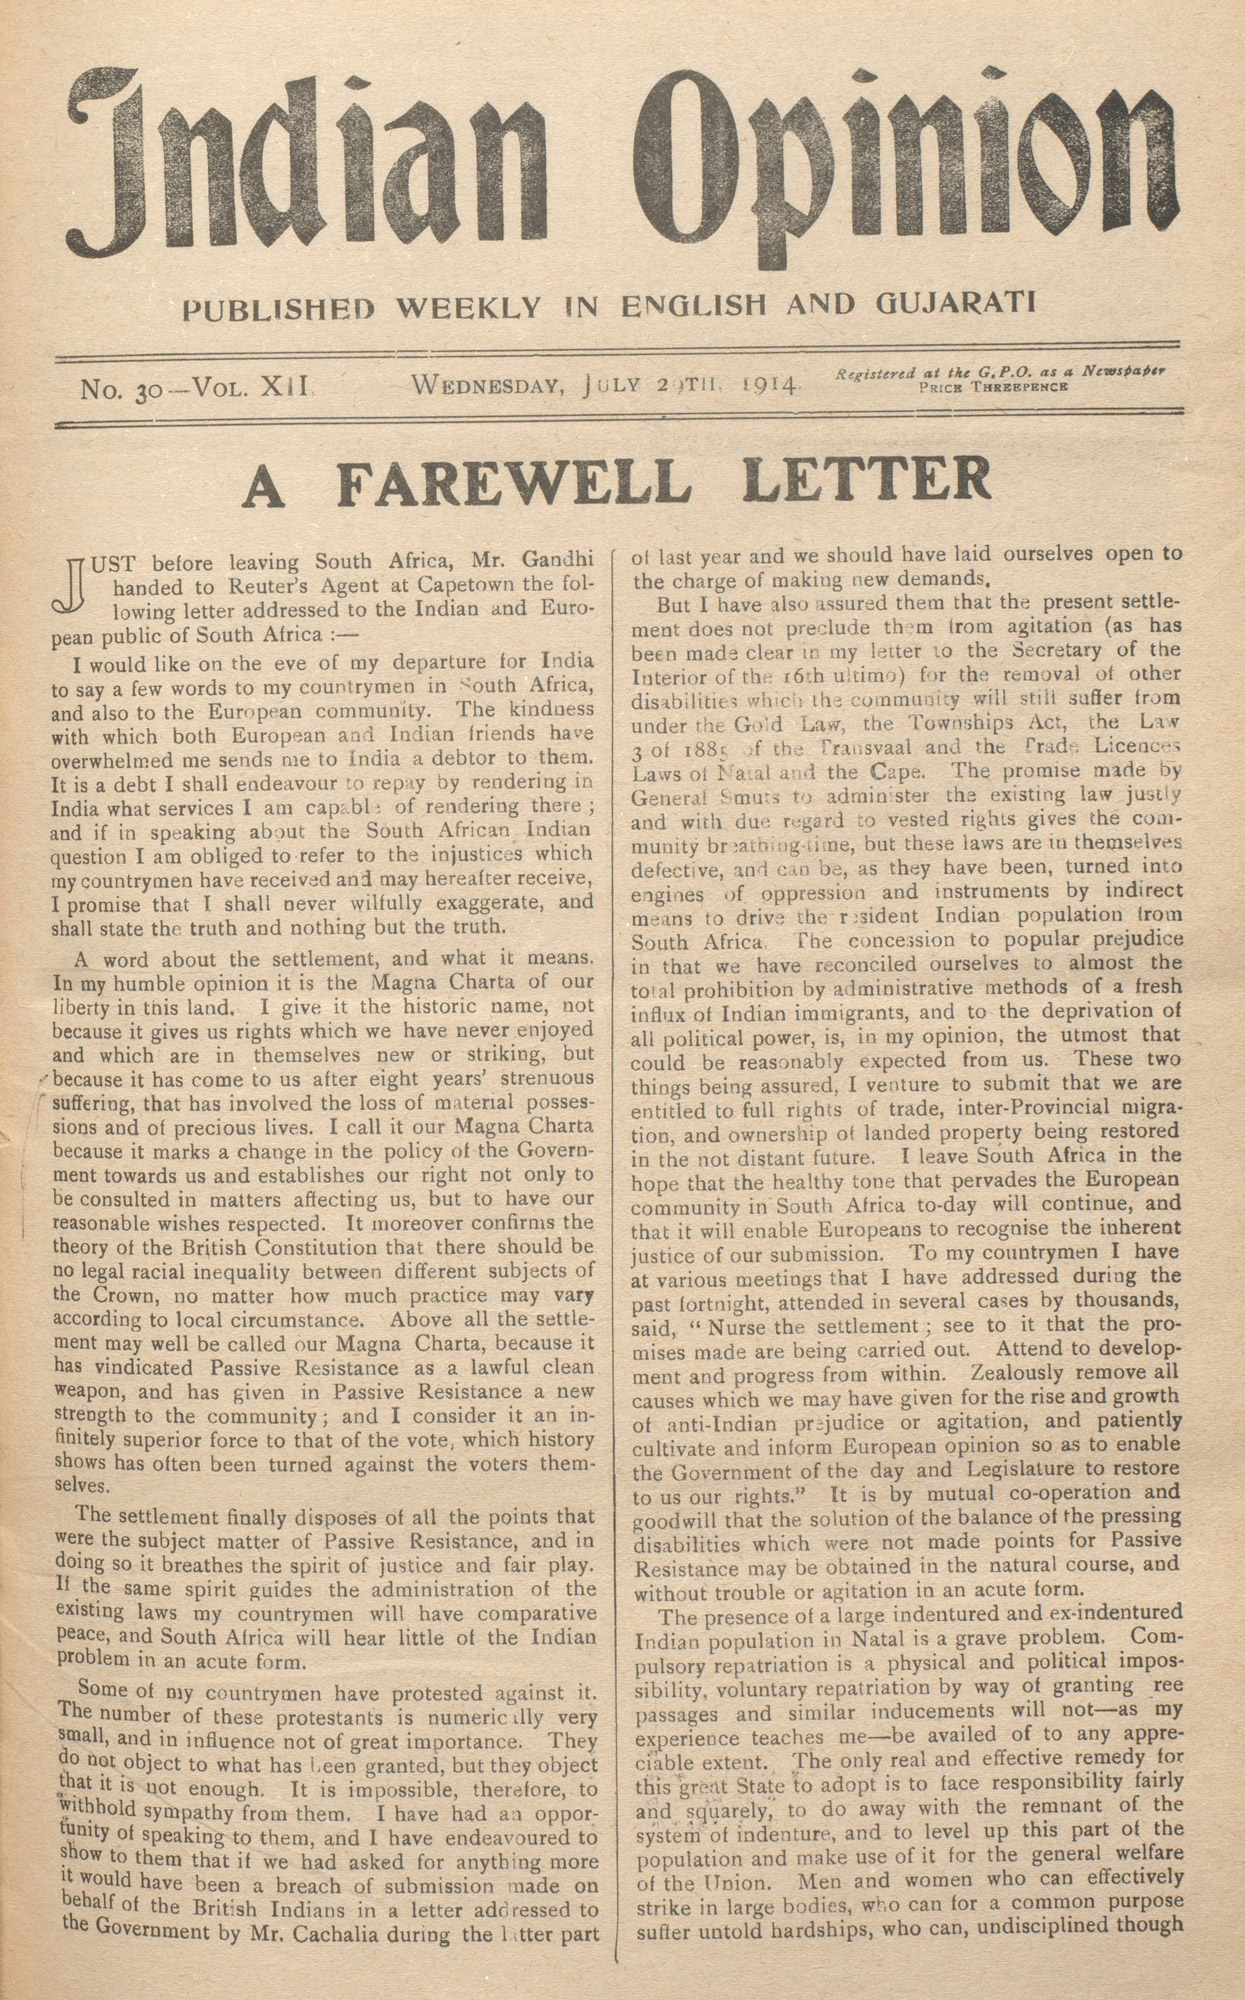 Mohandas Gandhi's A Farewell Letter in the newspaper Indian Opinion